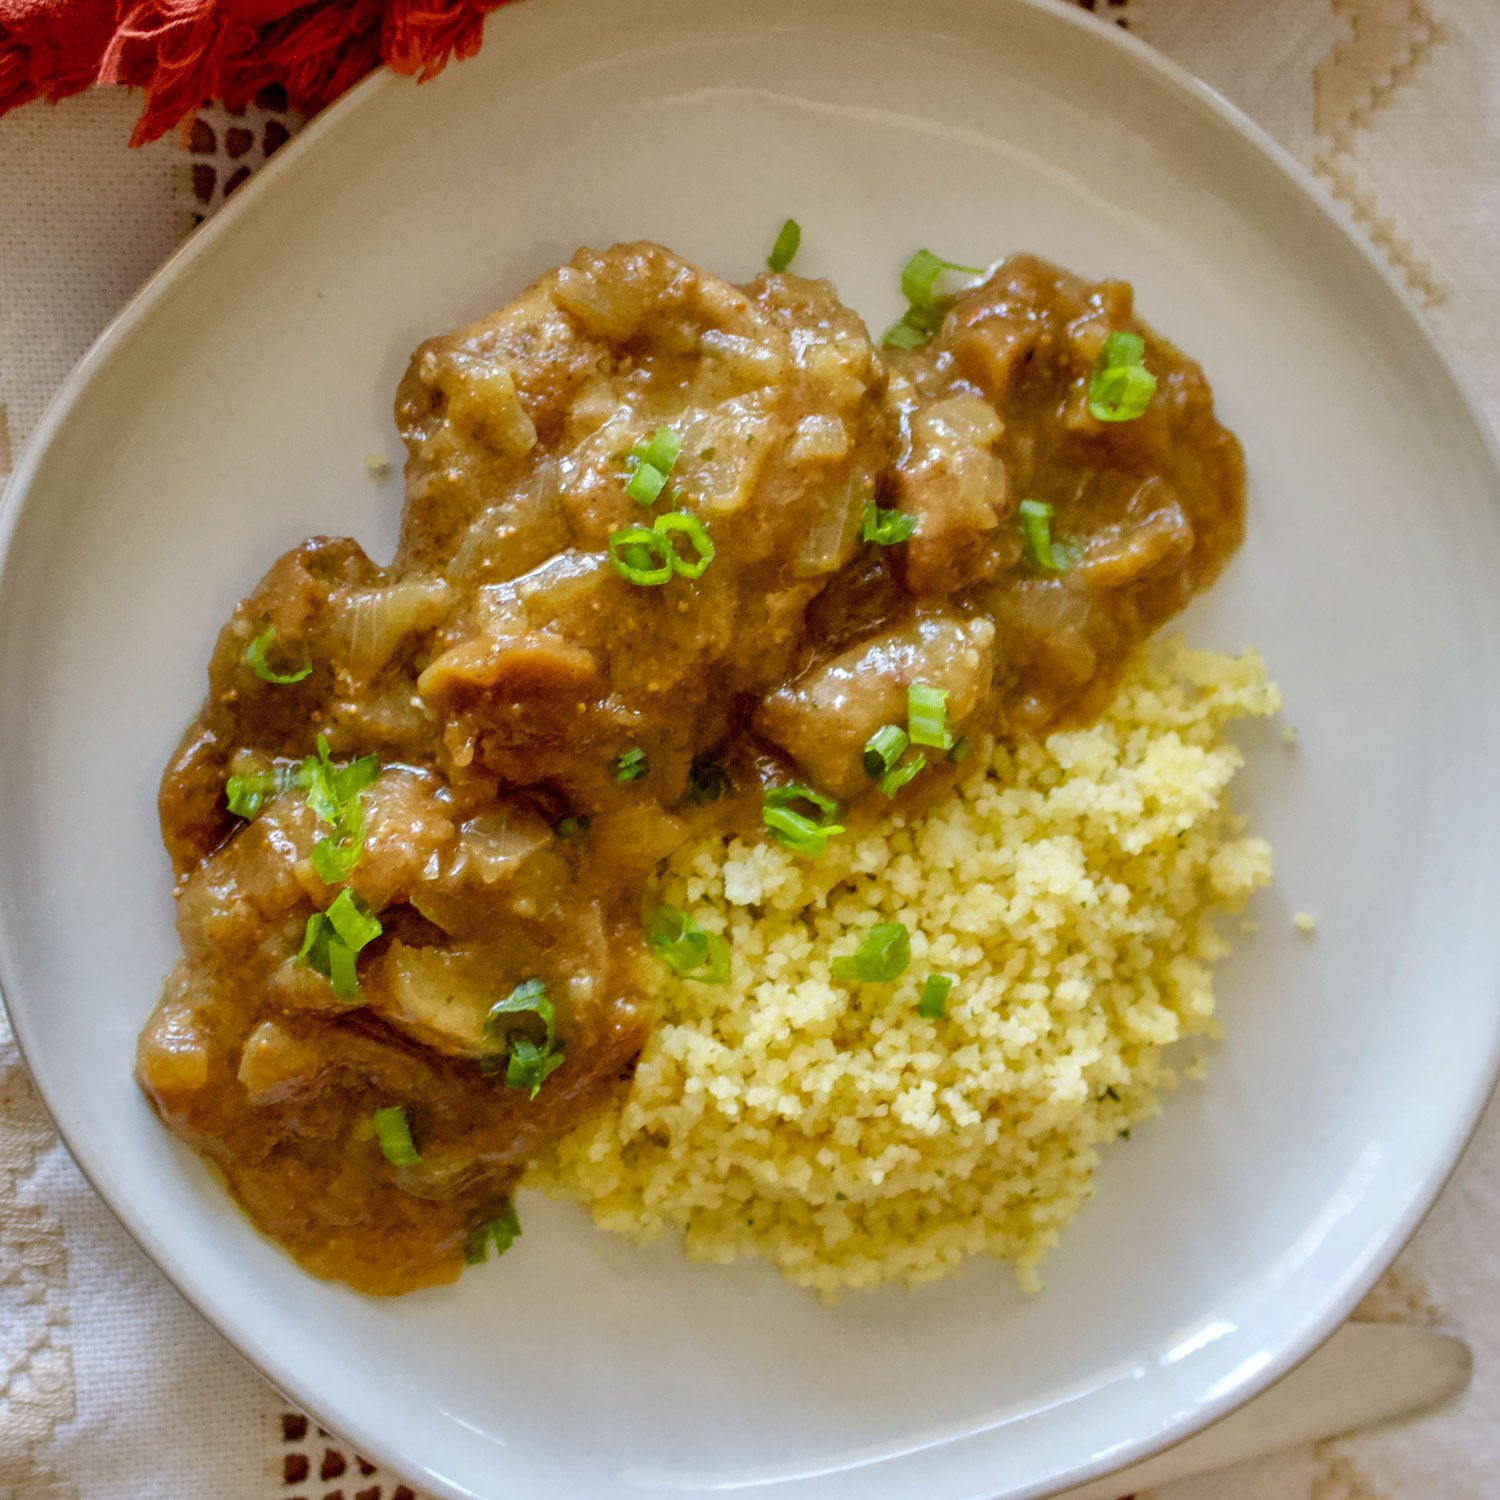 Moroccan Chicken with Figs And Couscous-This recipe of Moroccan Chicken with Figs and Couscous is a beautiful recipe that can be made any day of the week, but it could also be a wonderful dish to serve when you have company. Healthy and delicious, the recipe is loaded with spices that bring a lot of flavor to the dish.